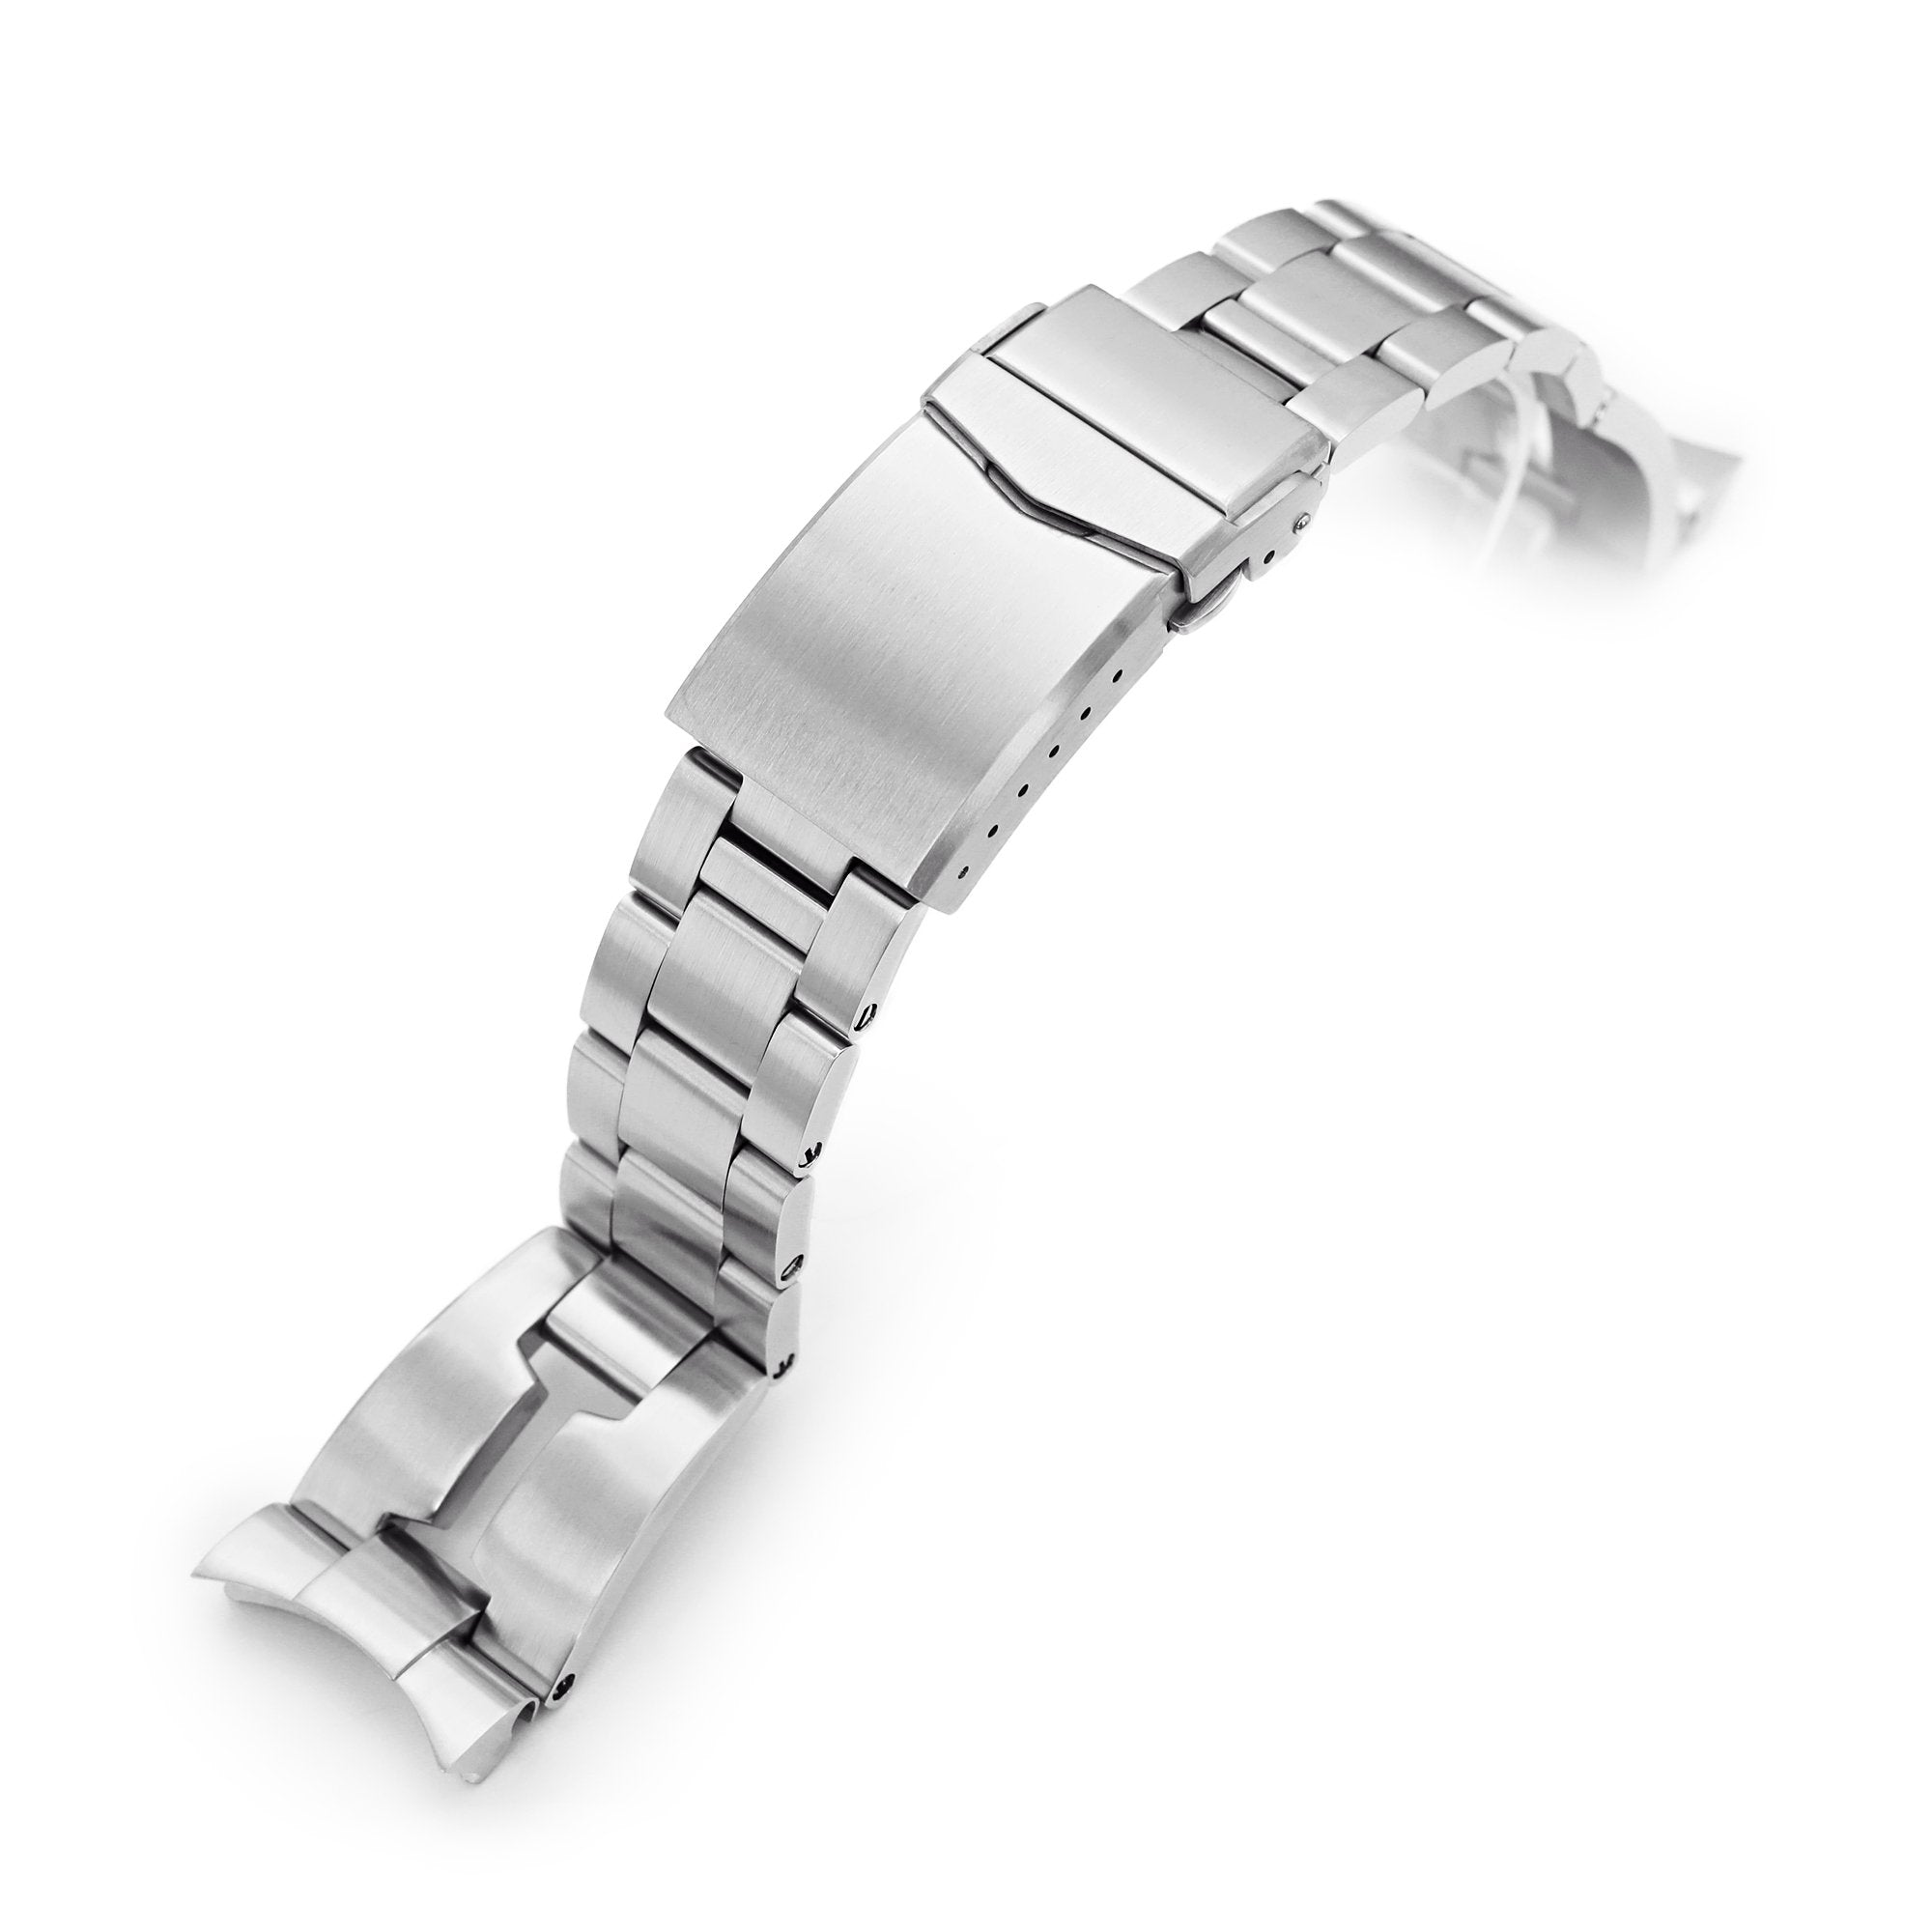 22mm Retro Razor 316L Stainless Steel Watch Bracelet for Orient Kamasu Brushed V-Clasp Strapcode Watch Bands